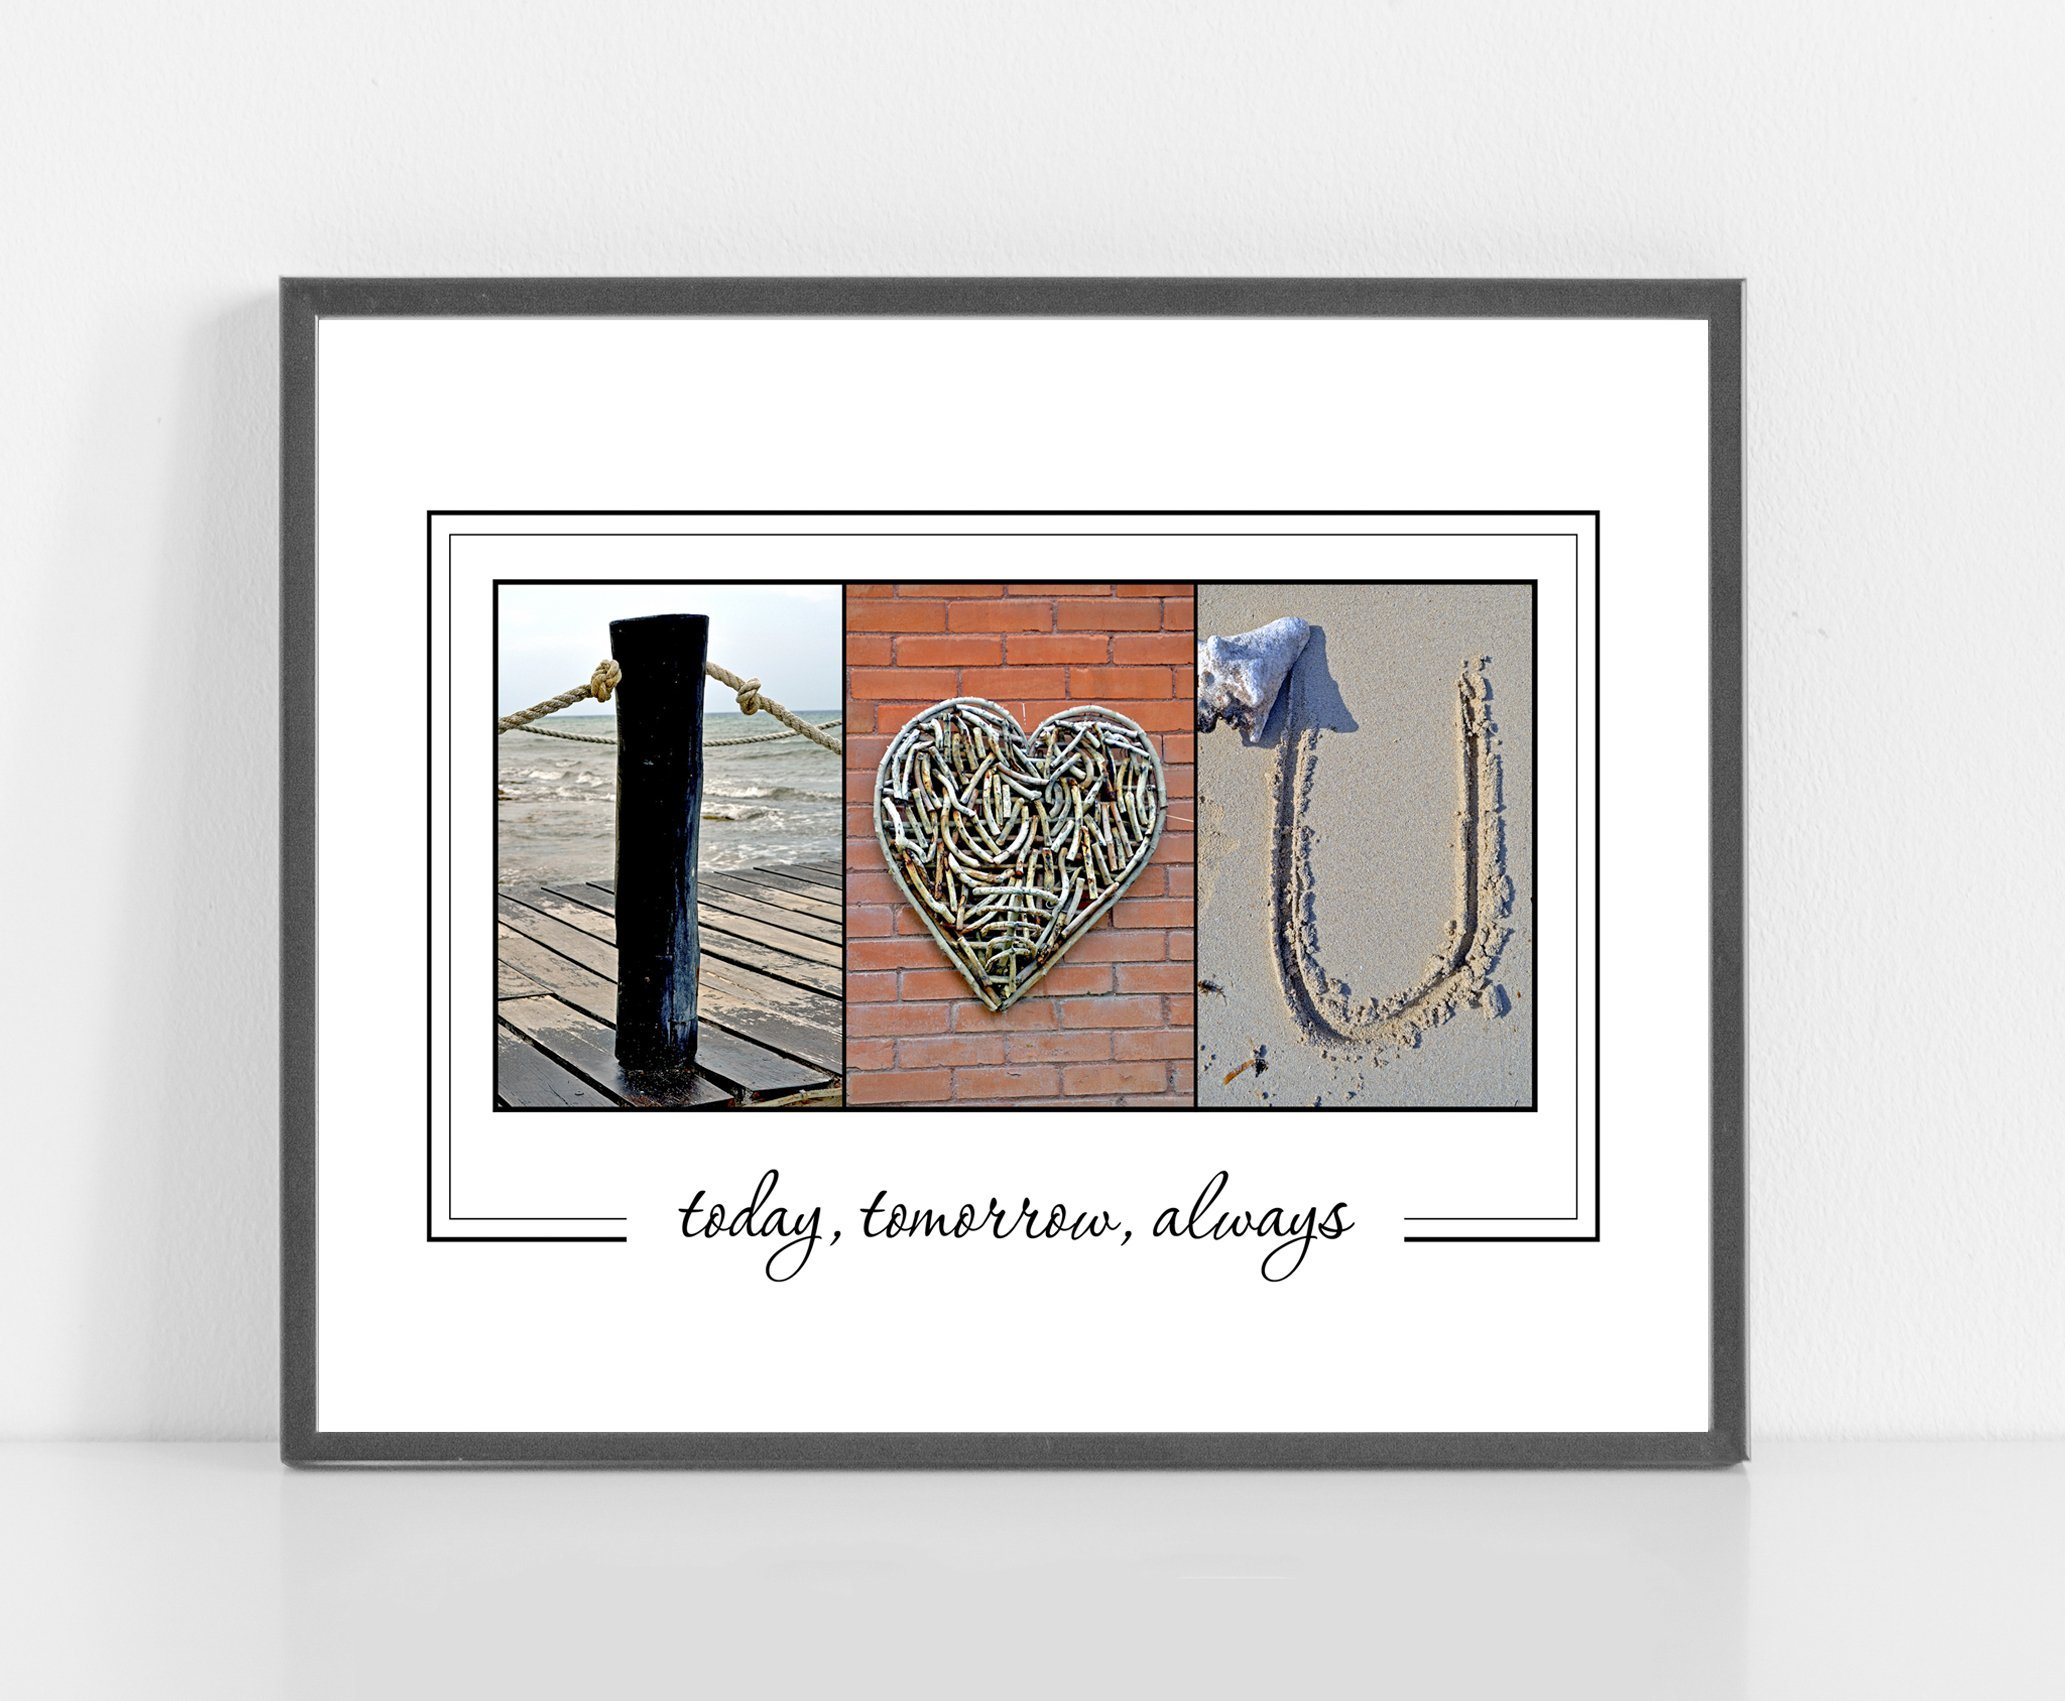 I LOVE U - Personalized Alphabet photography - UNFRAMED 8x10 print - for Couples in Love -Anniversary or Wedding gift- Valentine's day gift